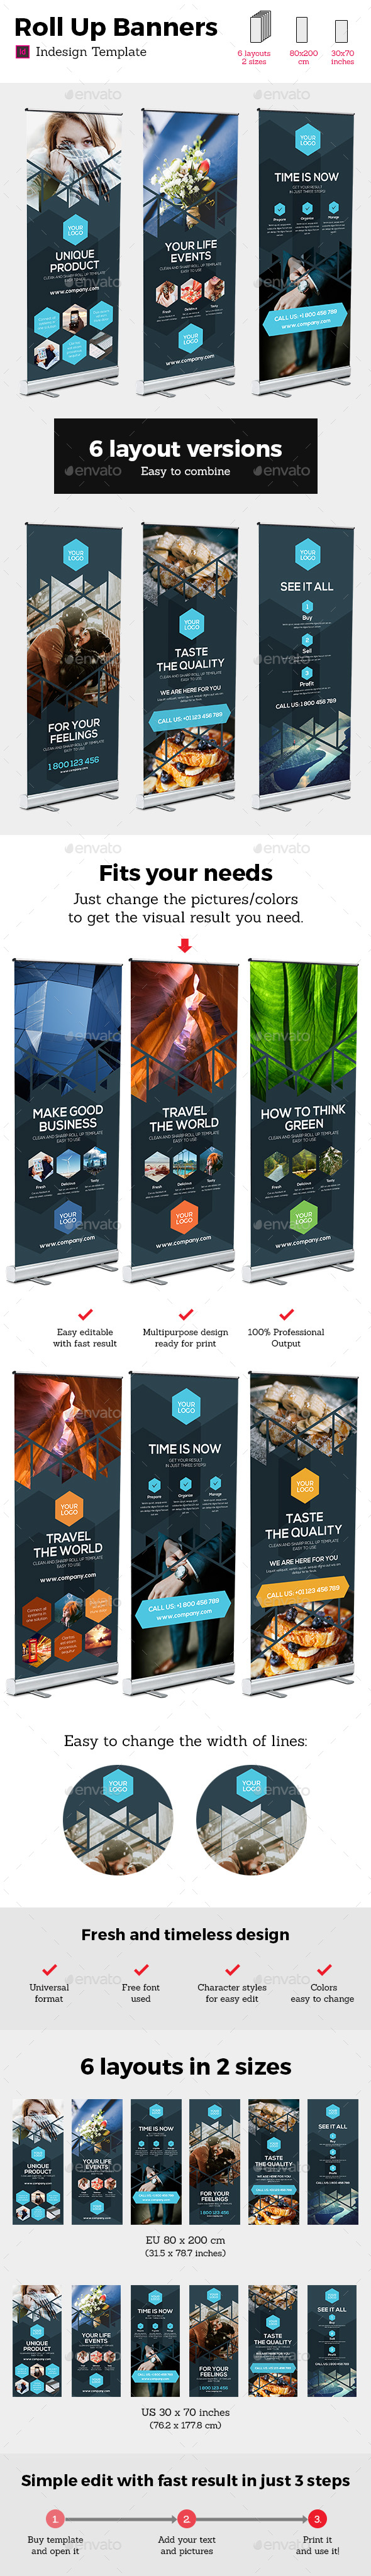 Rollup Stand Banner Display Triangle 12x Indesign Template - Signage Print Templates